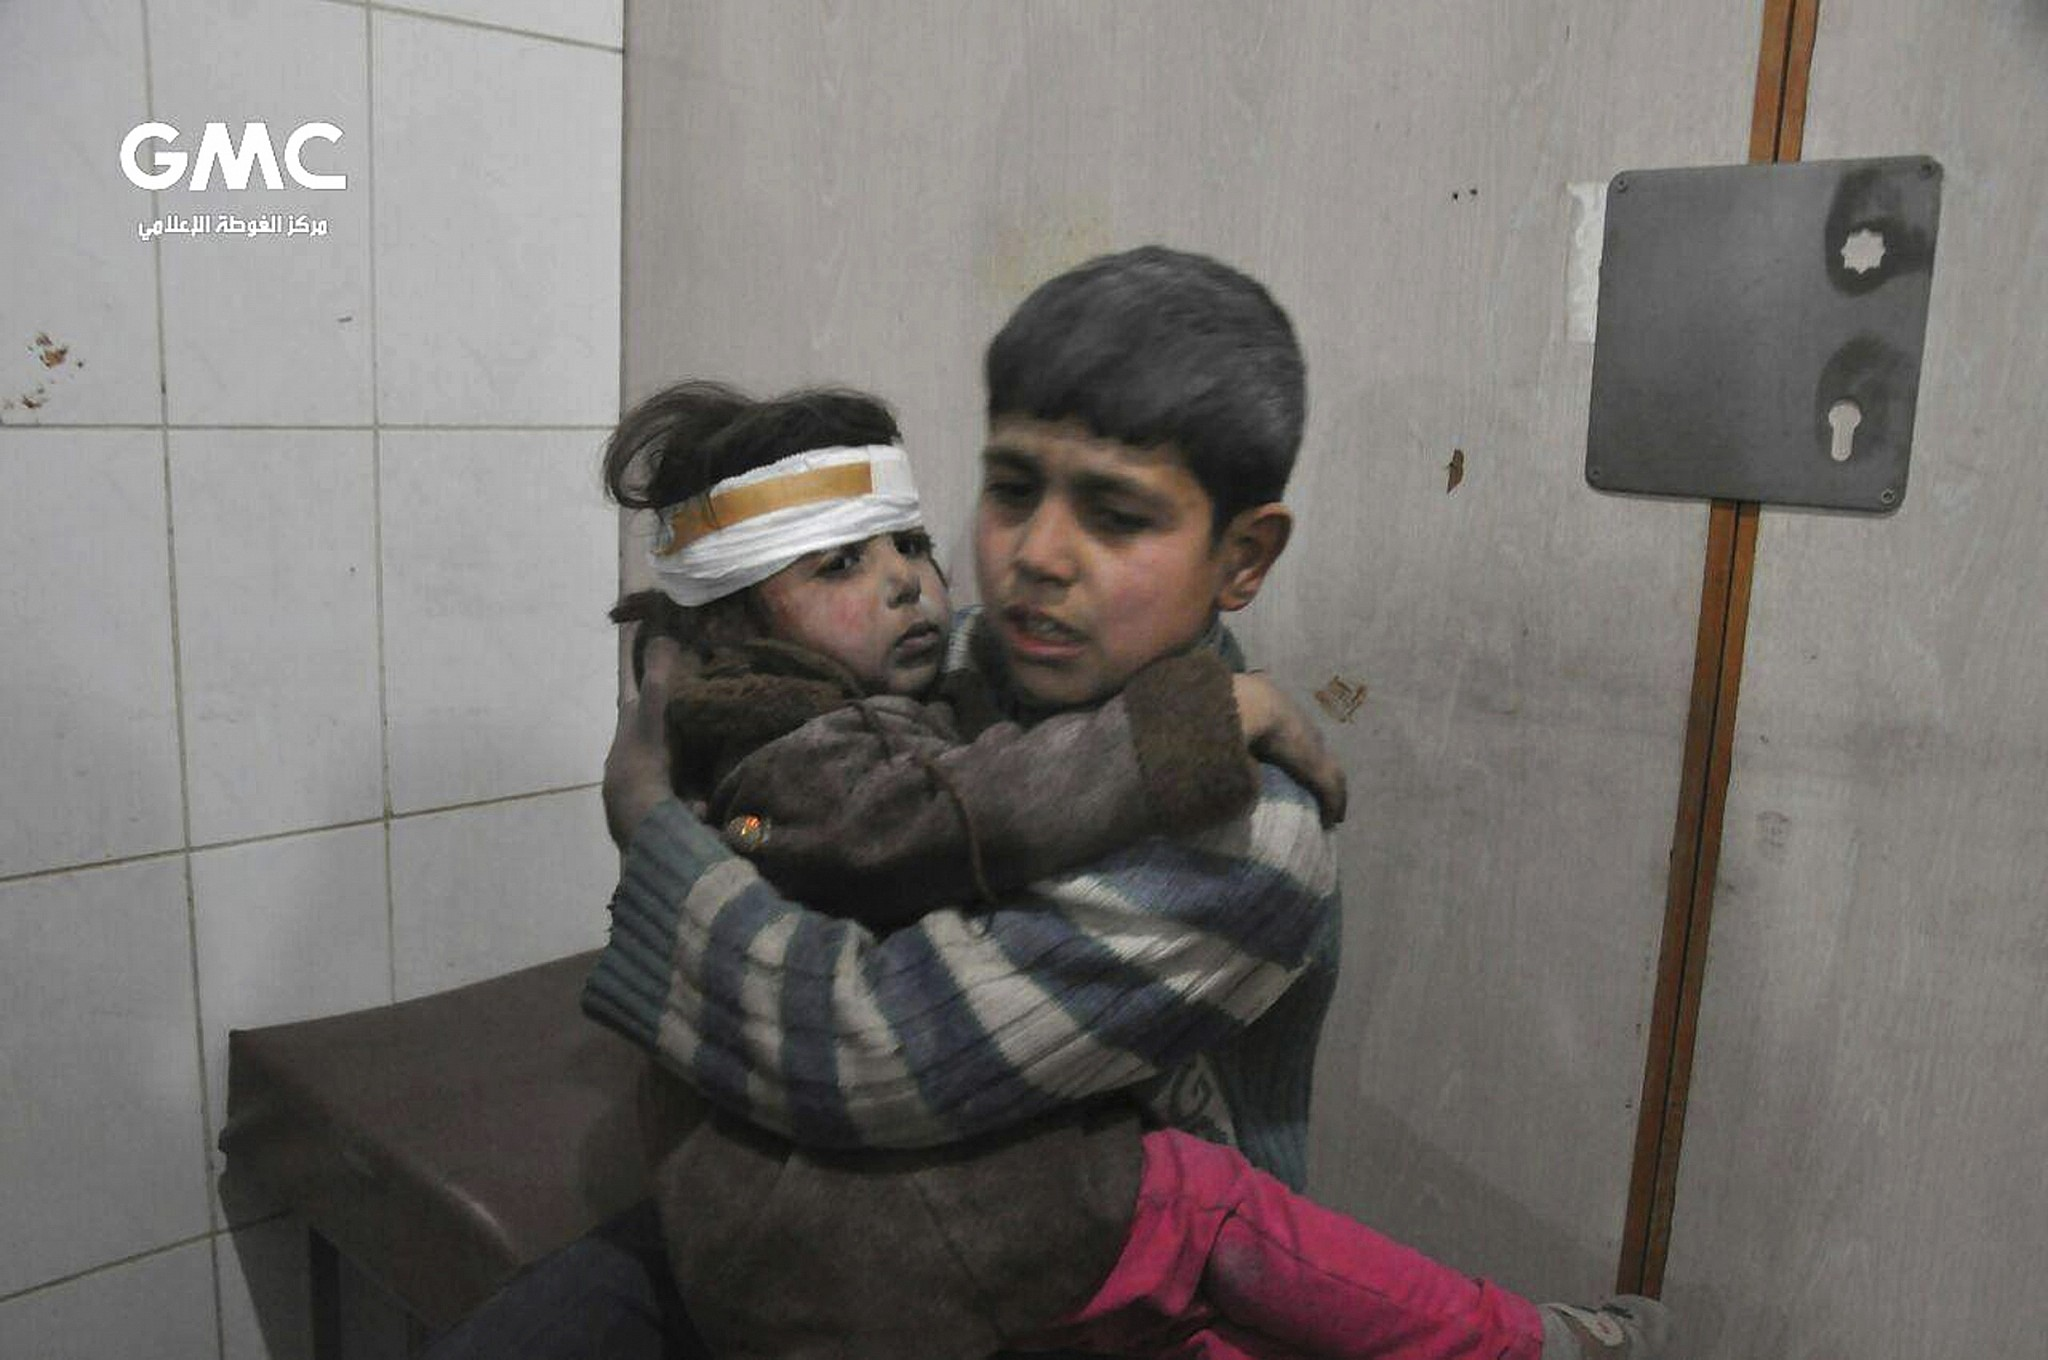 European Union  calls for ceasefire in Syria's eastern Ghouta, urgent aid access